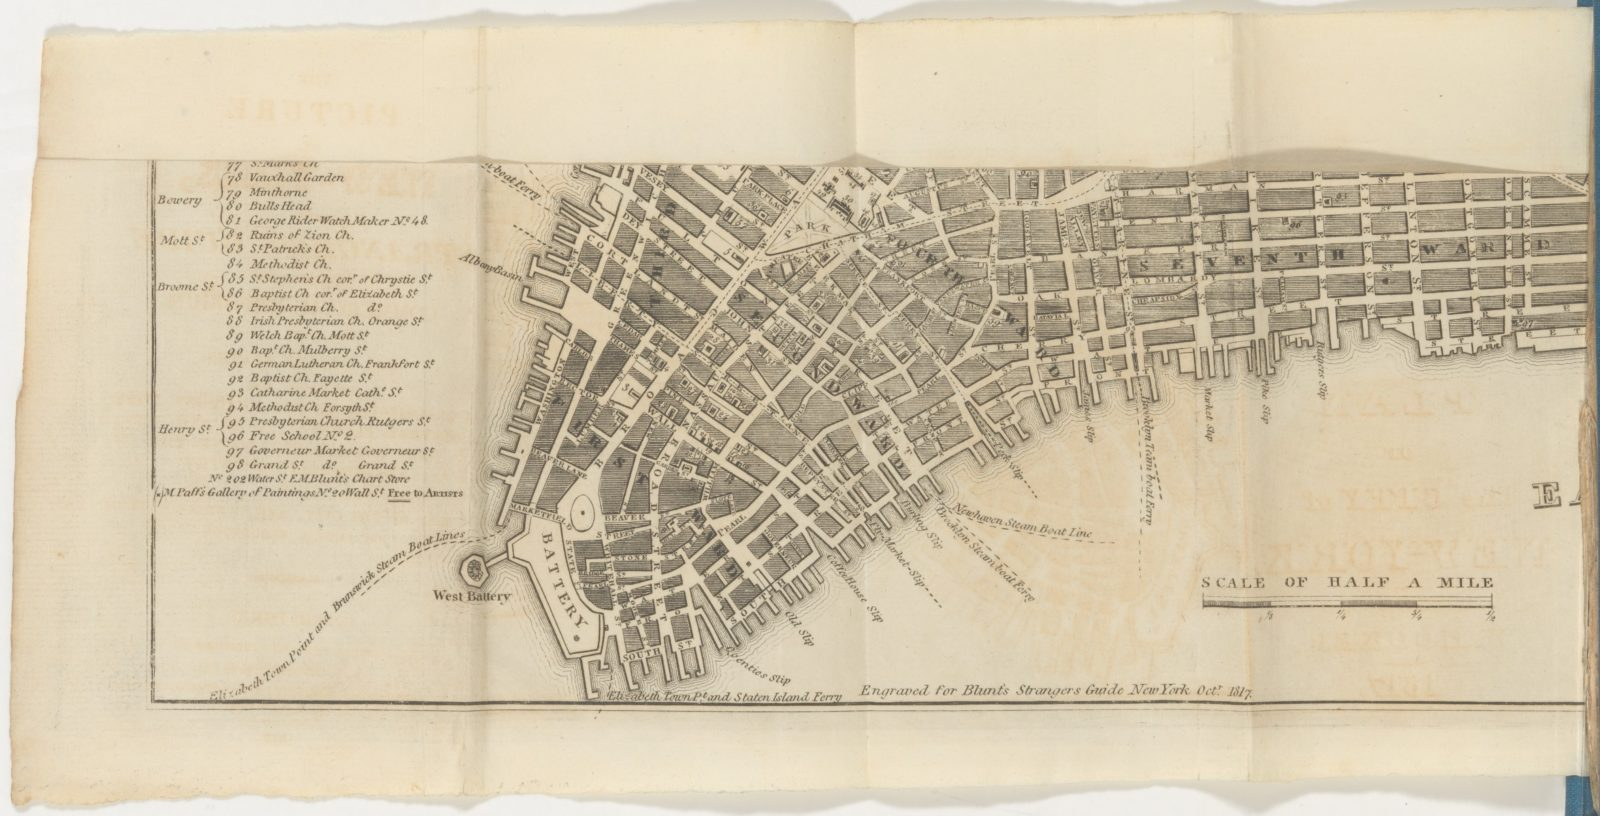 The Picture of New York, and Stranger's Guide through the Commercial Emporium of the United States.